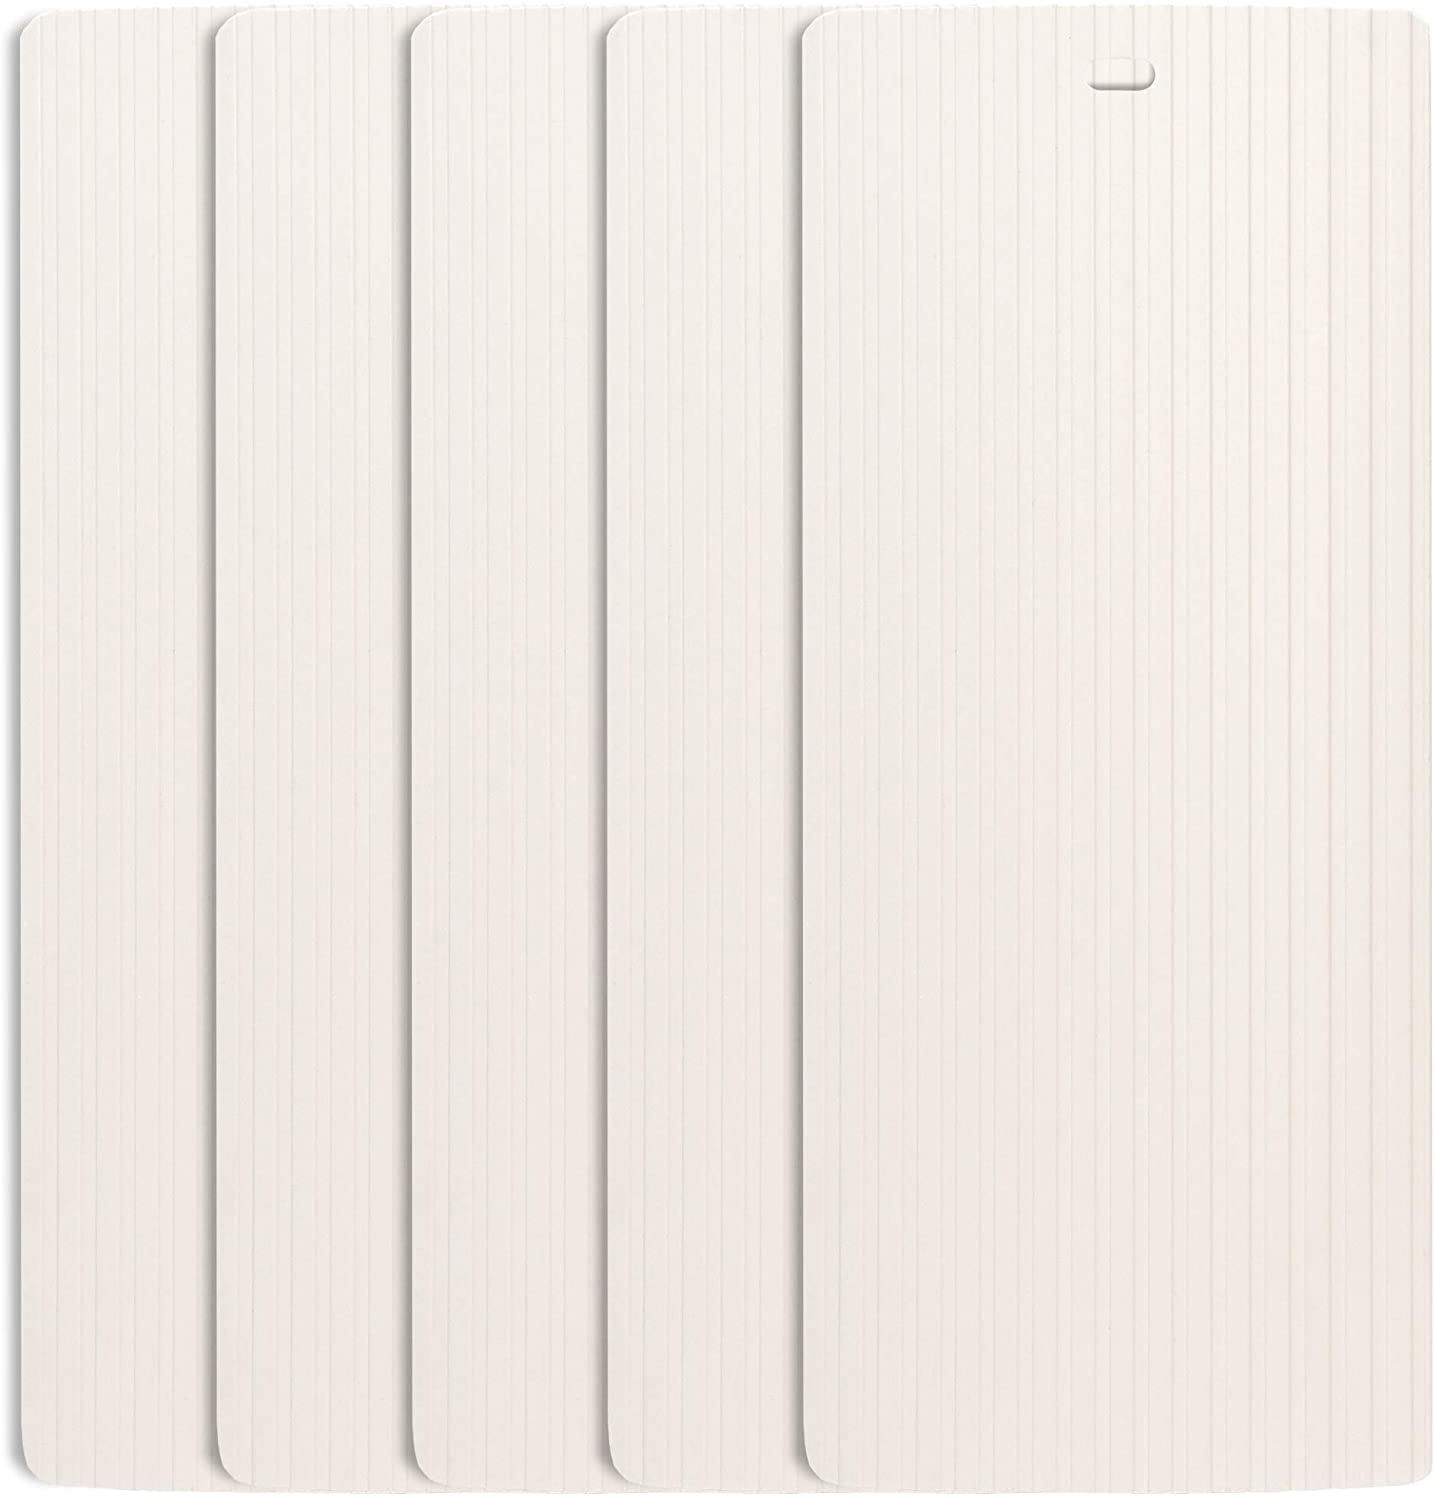 """DALIX Ribbed Window Replacement Blinds Vertical Slats Ivory 82.5"""" Window 5 Pack"""